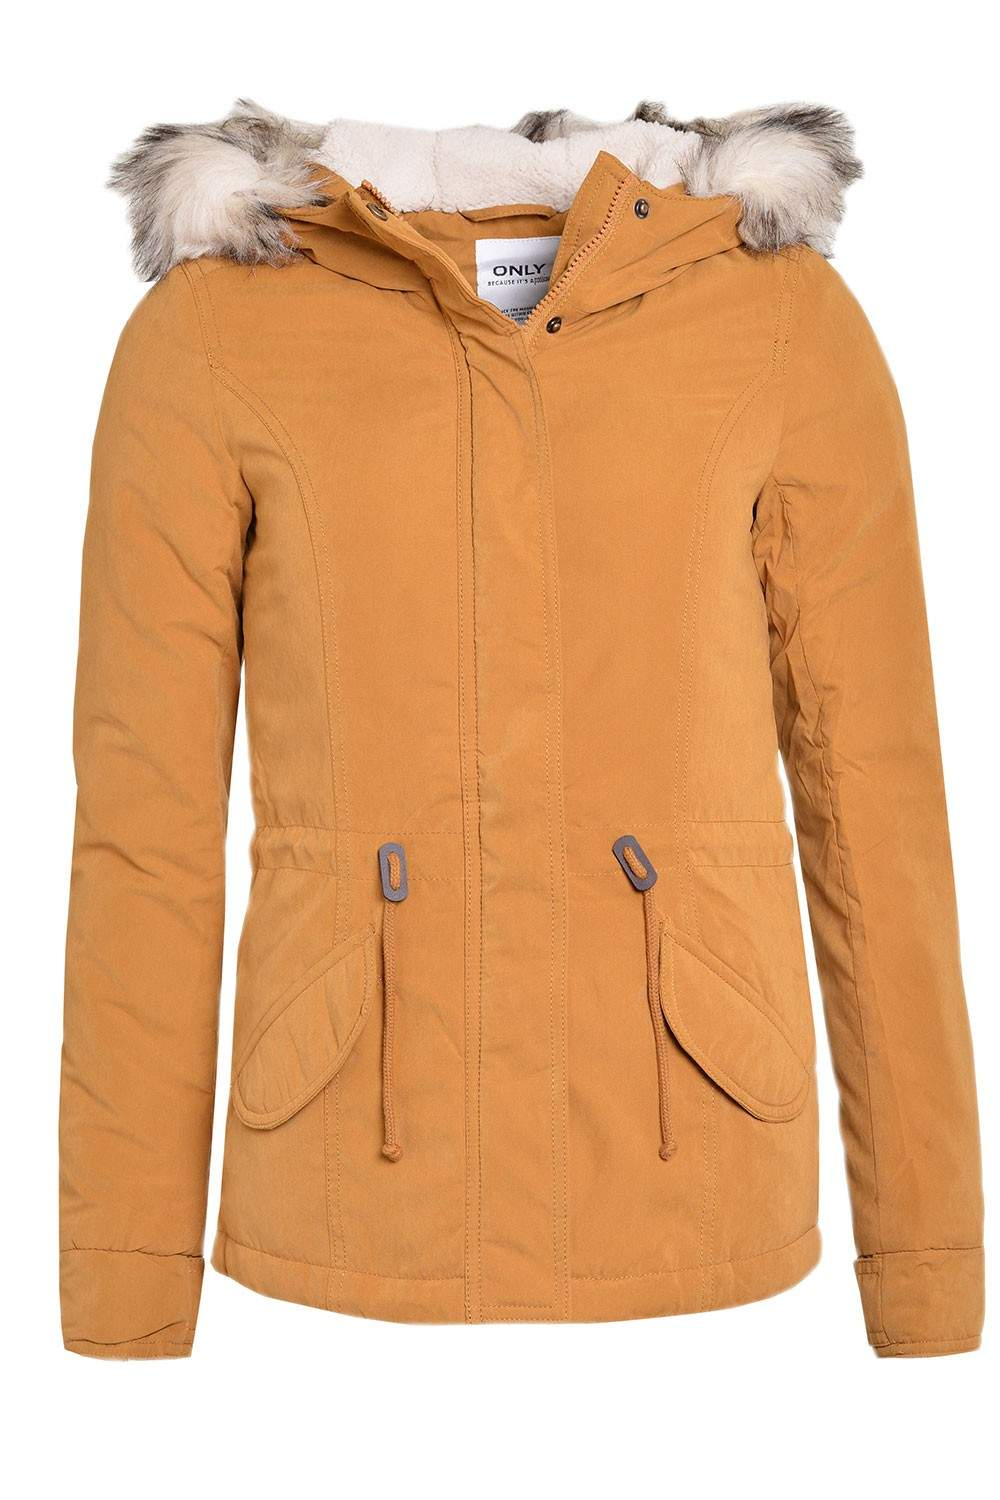 Only Lucca Short Parka Jacket in Mustard | iCLOTHING